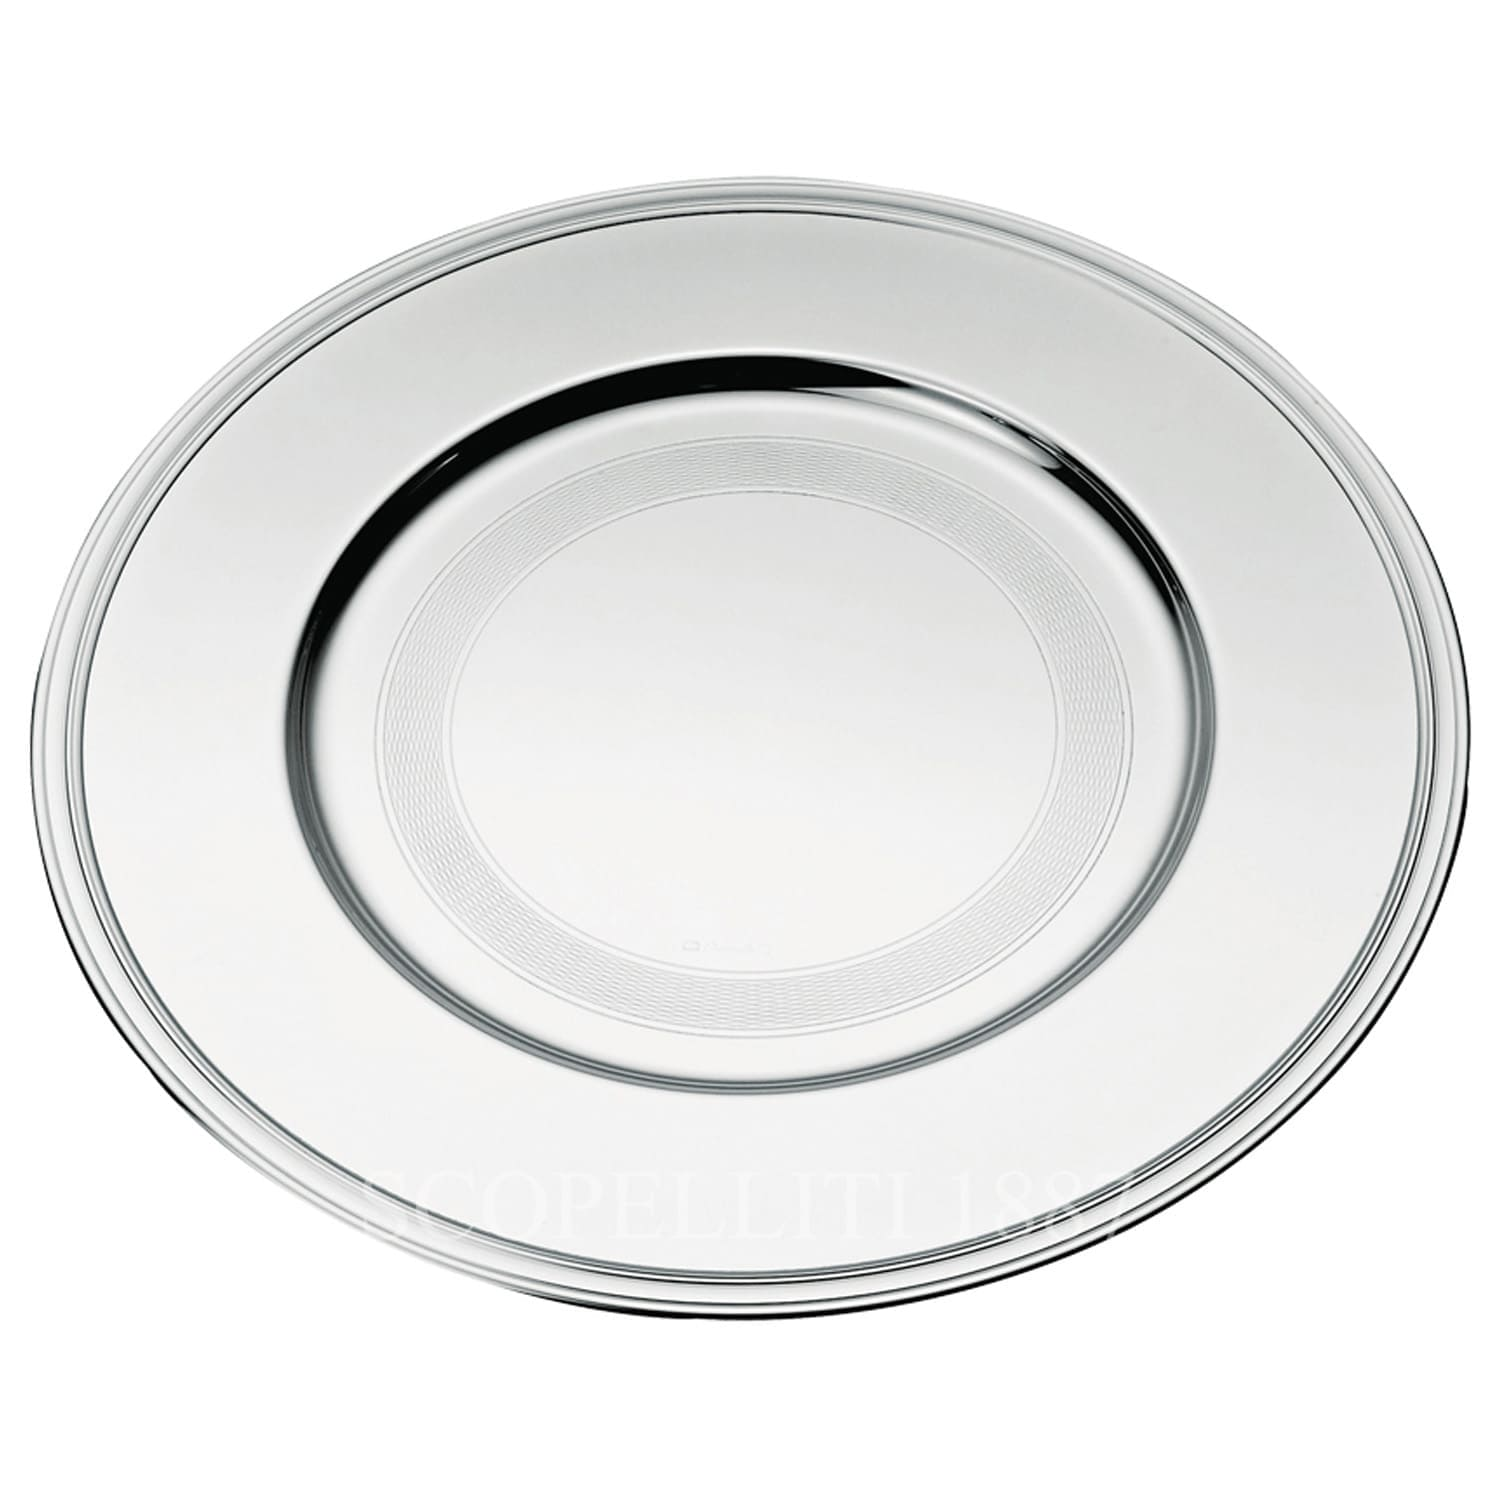 christofle albi silver plated presentation plate